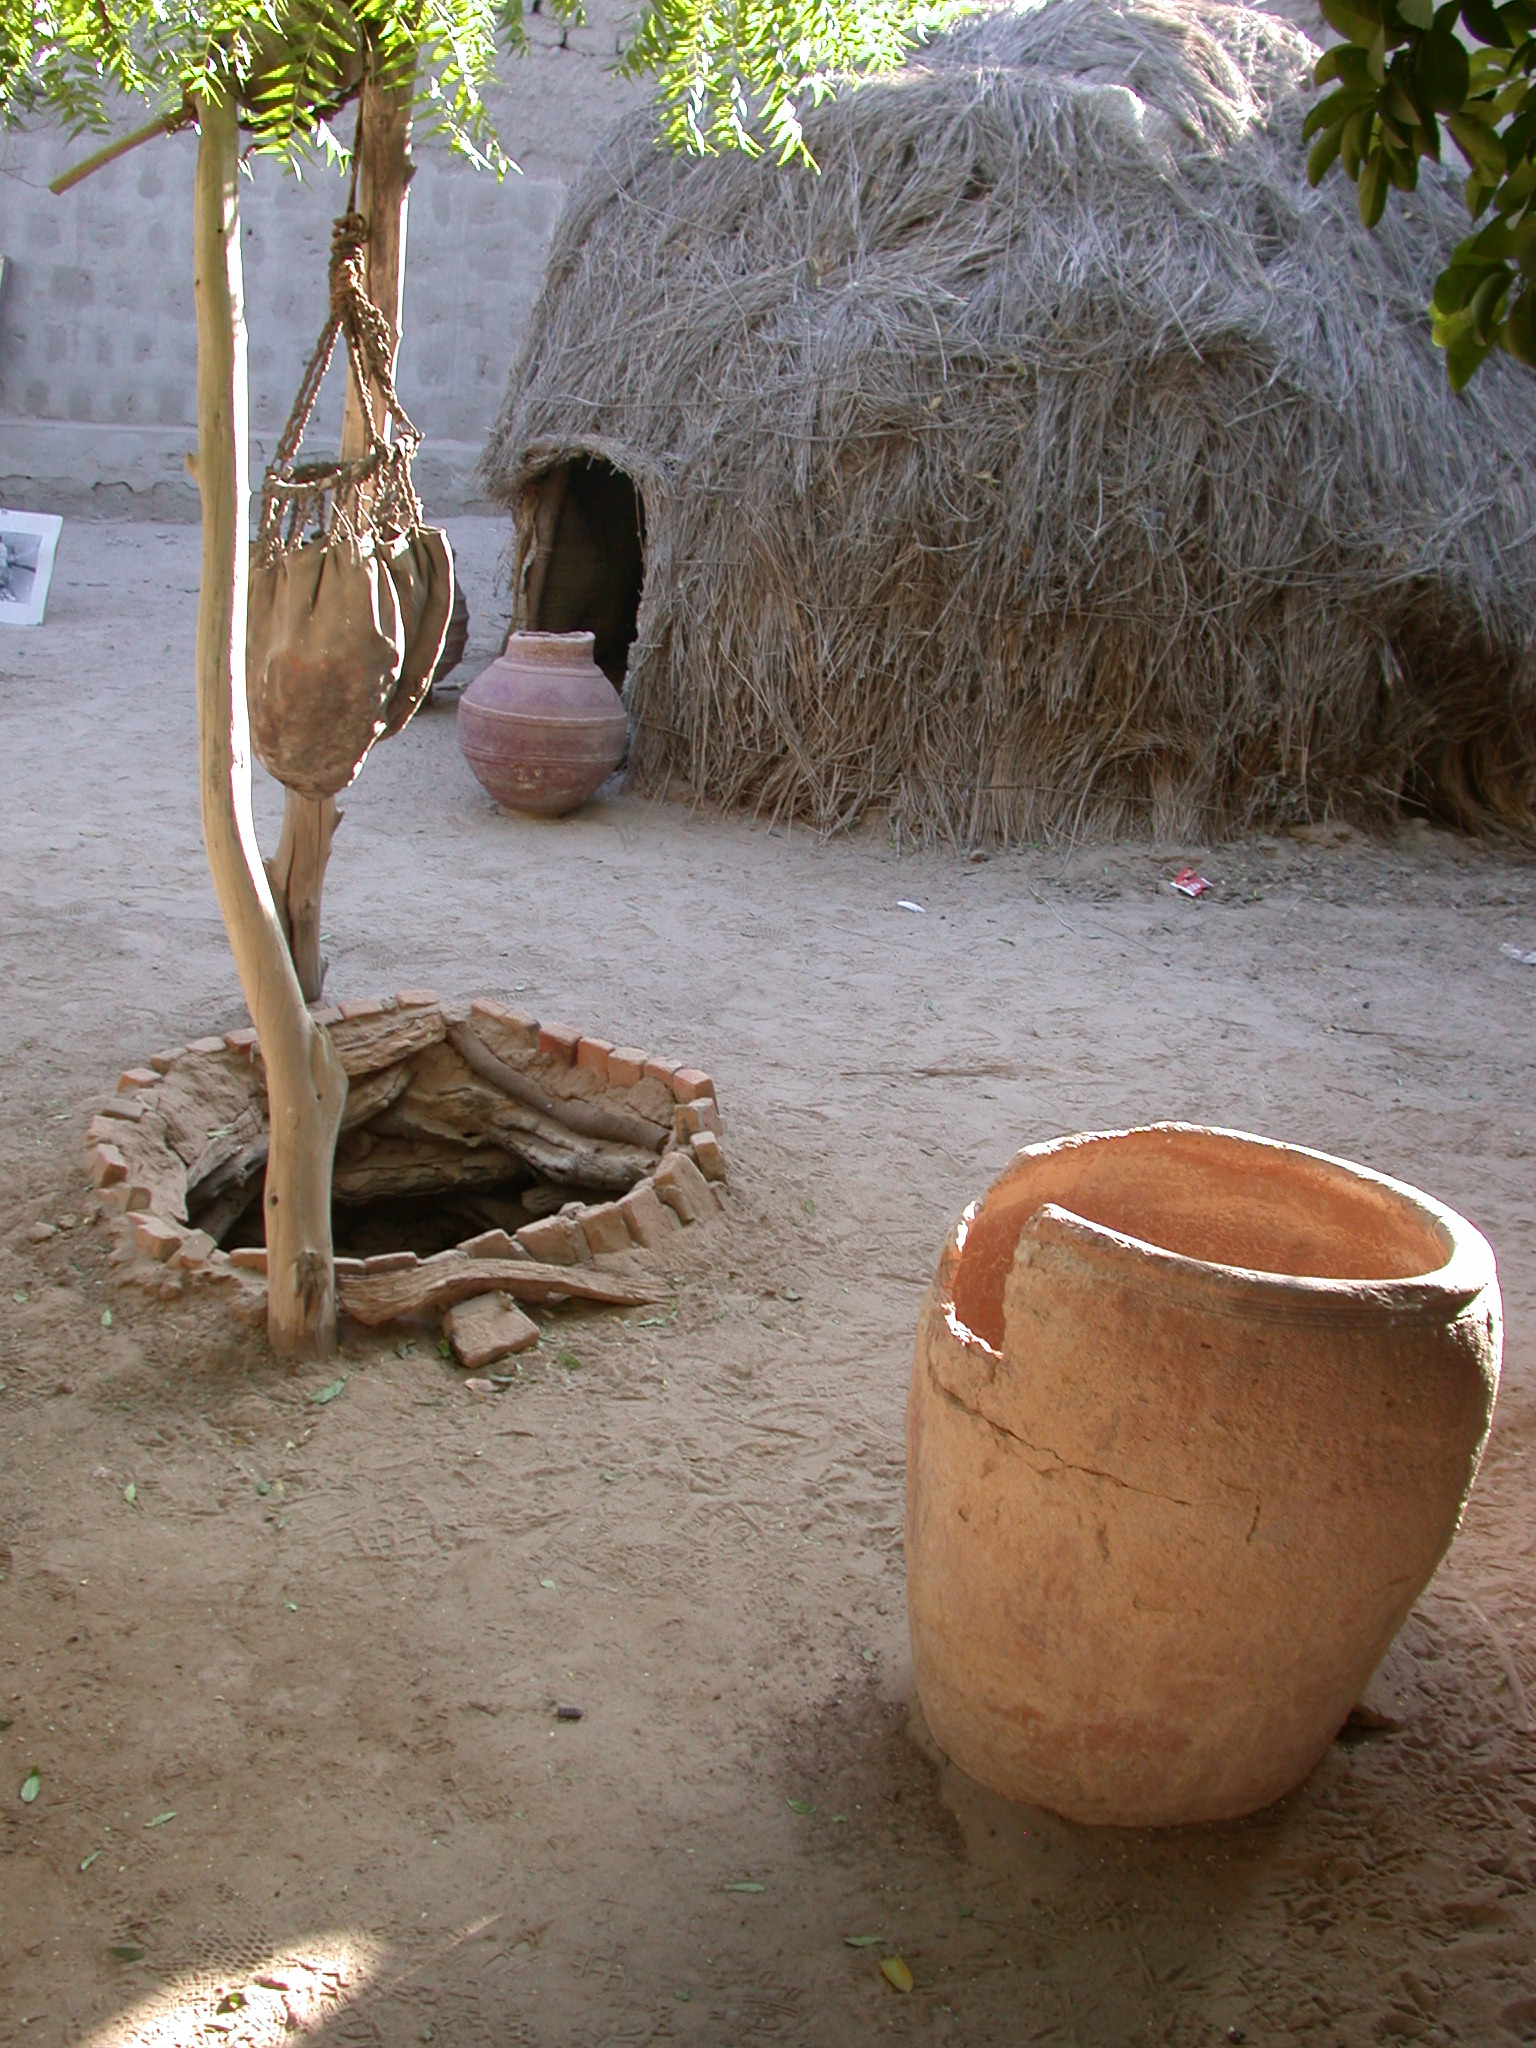 Water Bag, Well Replica, and Thatch Hut at Reputed Site of Well of Boctou Whence Timbuktu Got Its Name, Timbuktu, Mali